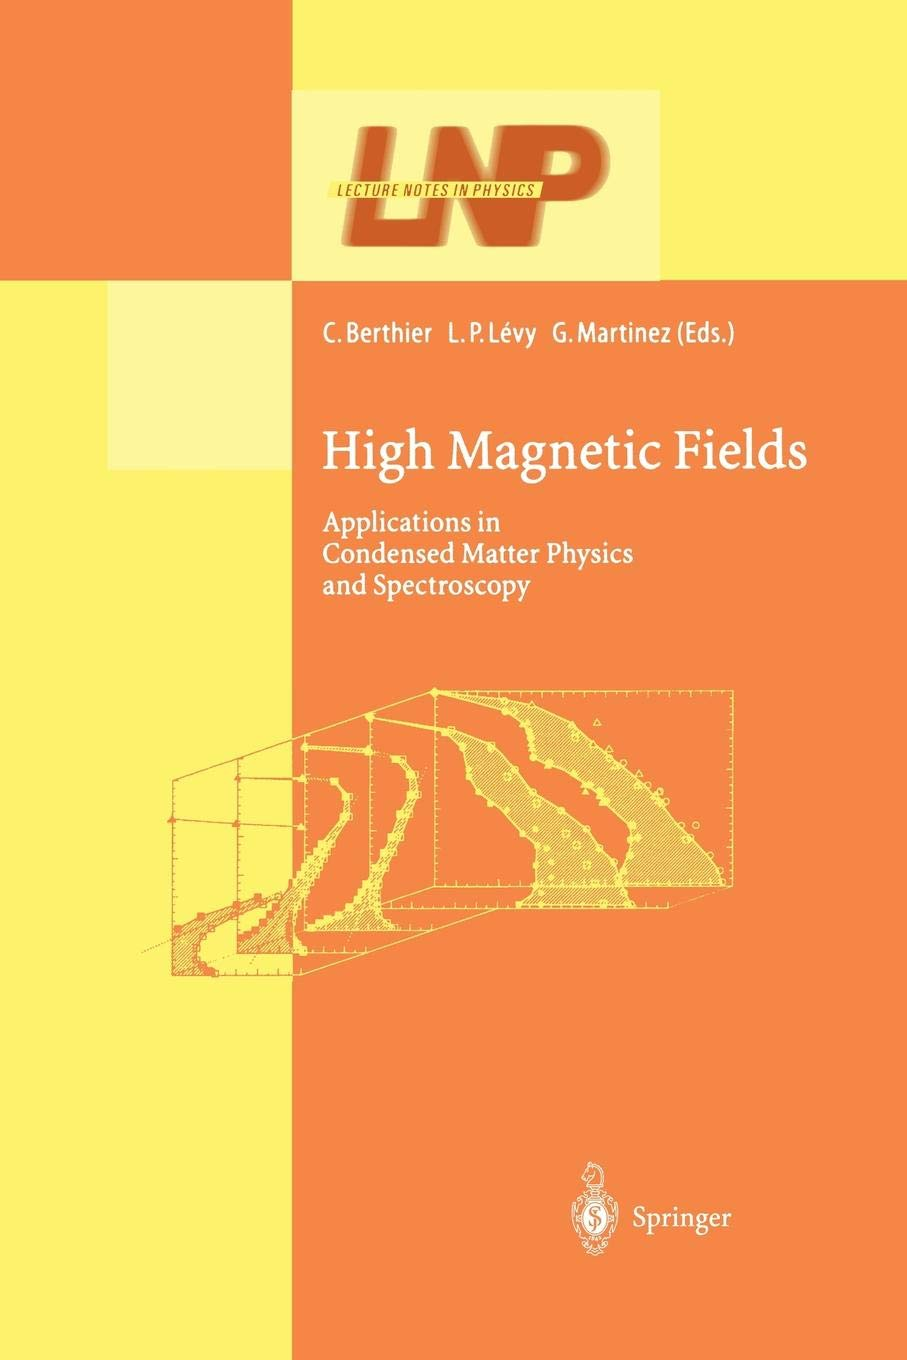 High Magnetic Fields: Applications in Condensed Matter